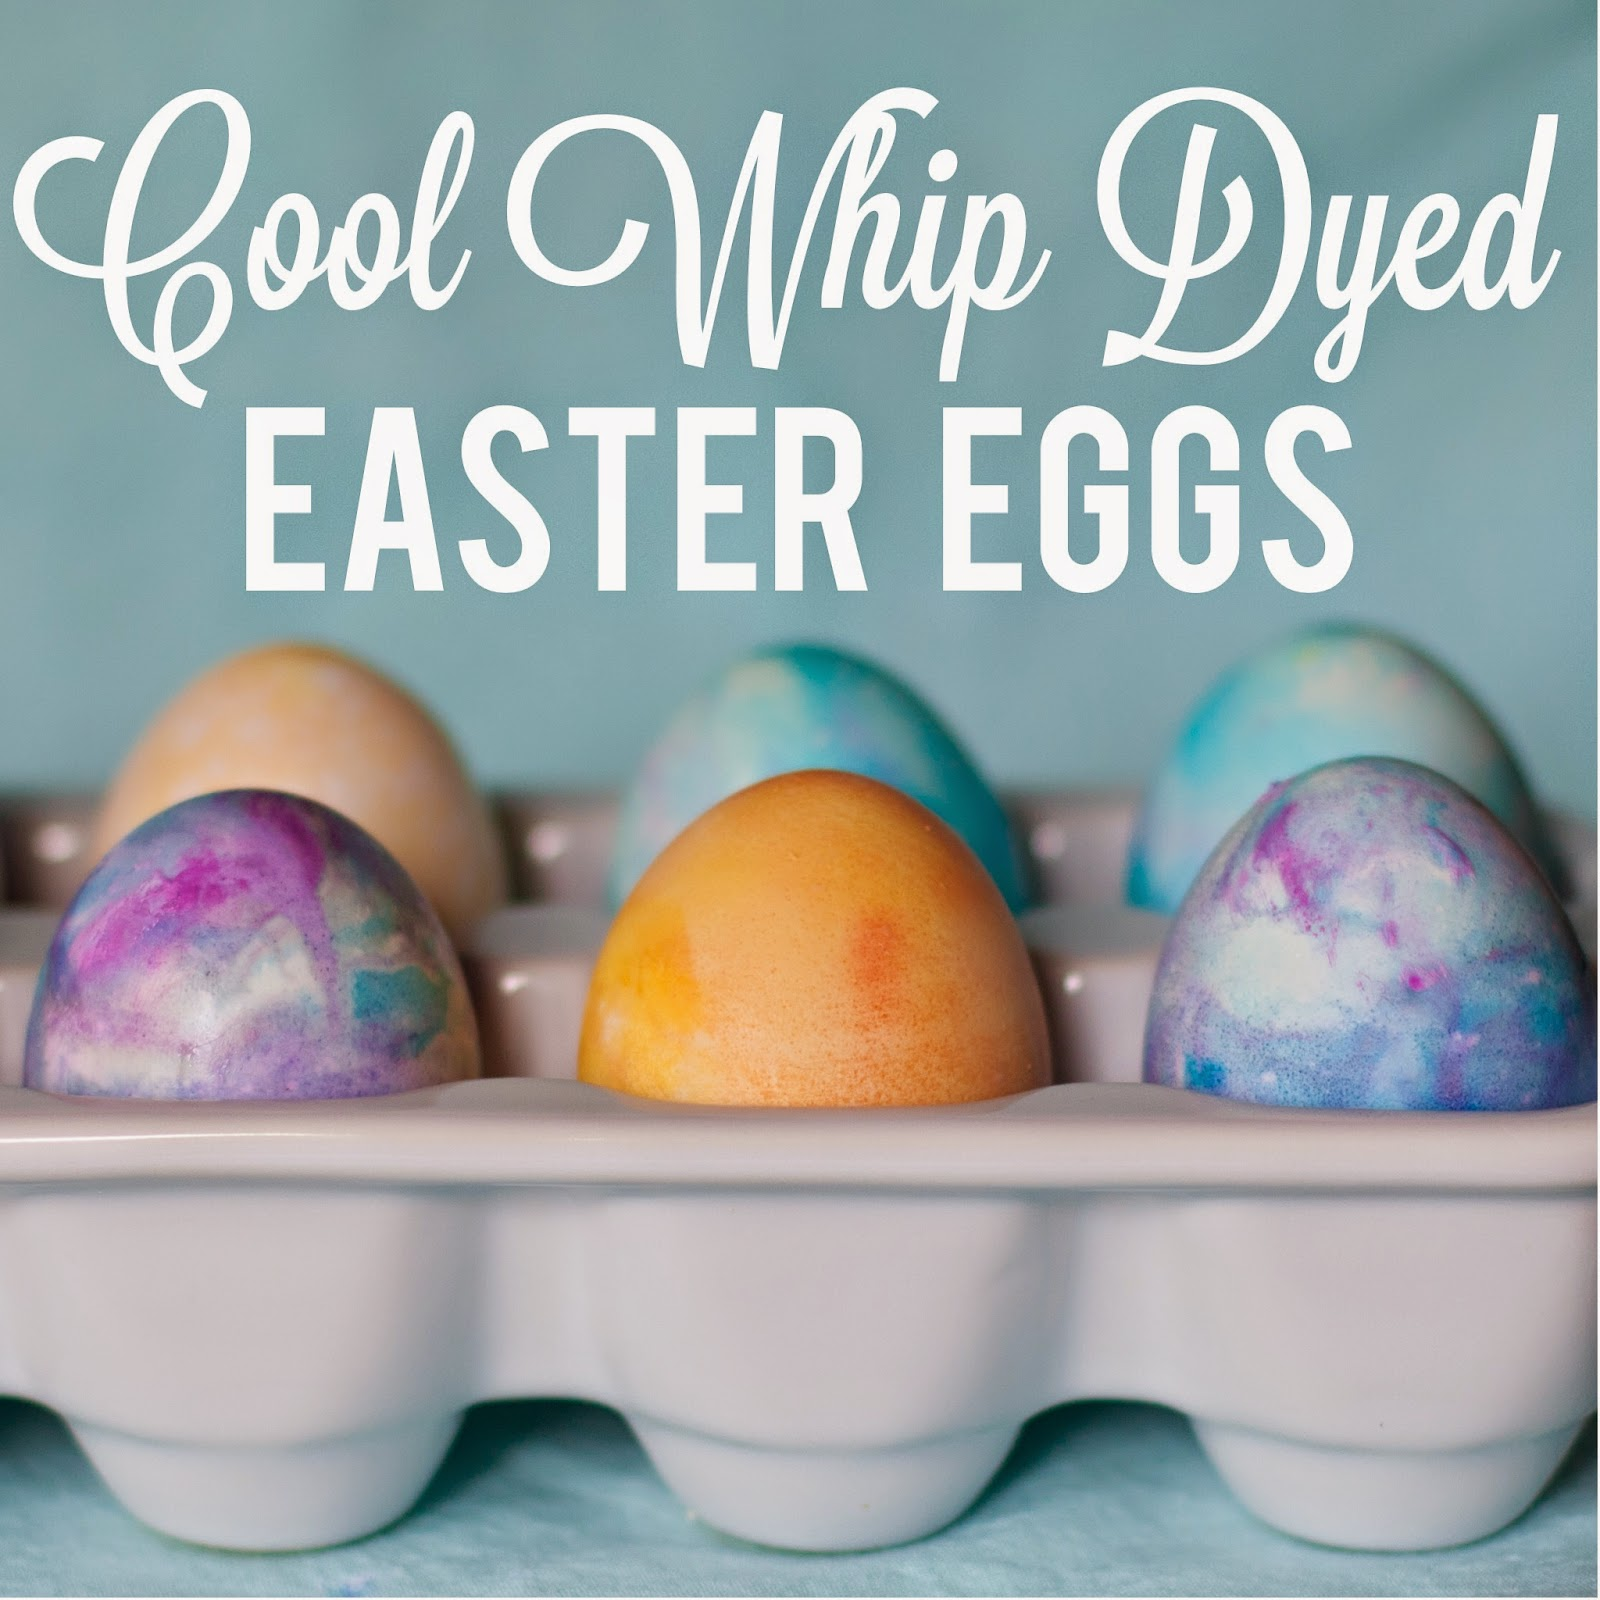 Cool Whip Dyed Easter Eggs - Klein dot Co